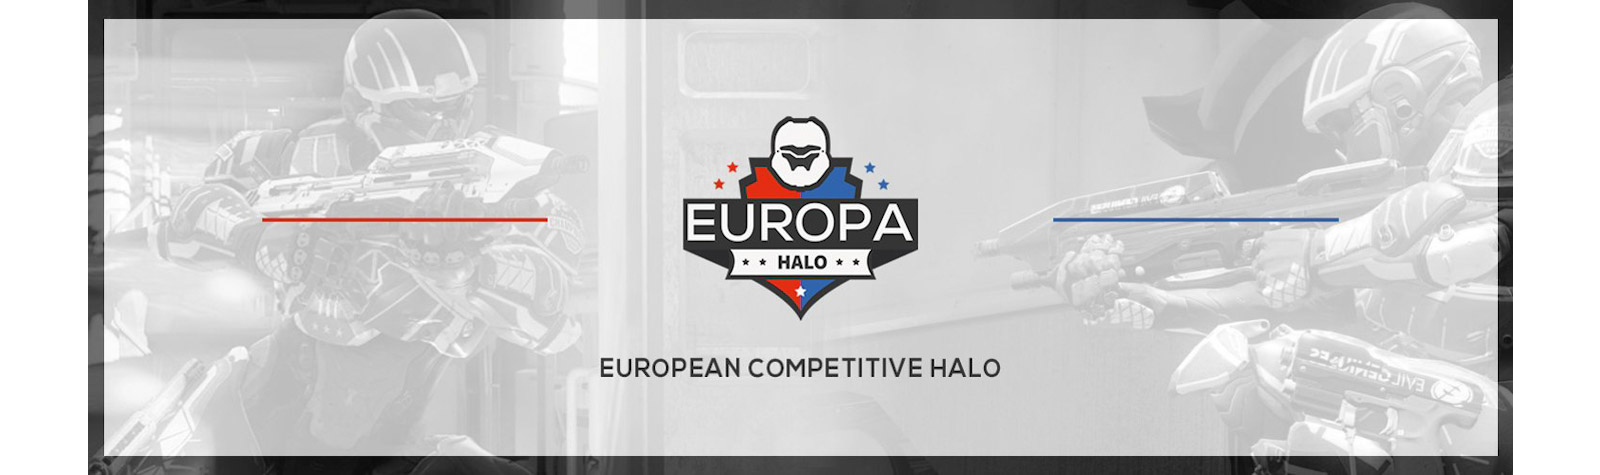 Europa Halo Double Series Qualifier #2 Results – 3/18/20